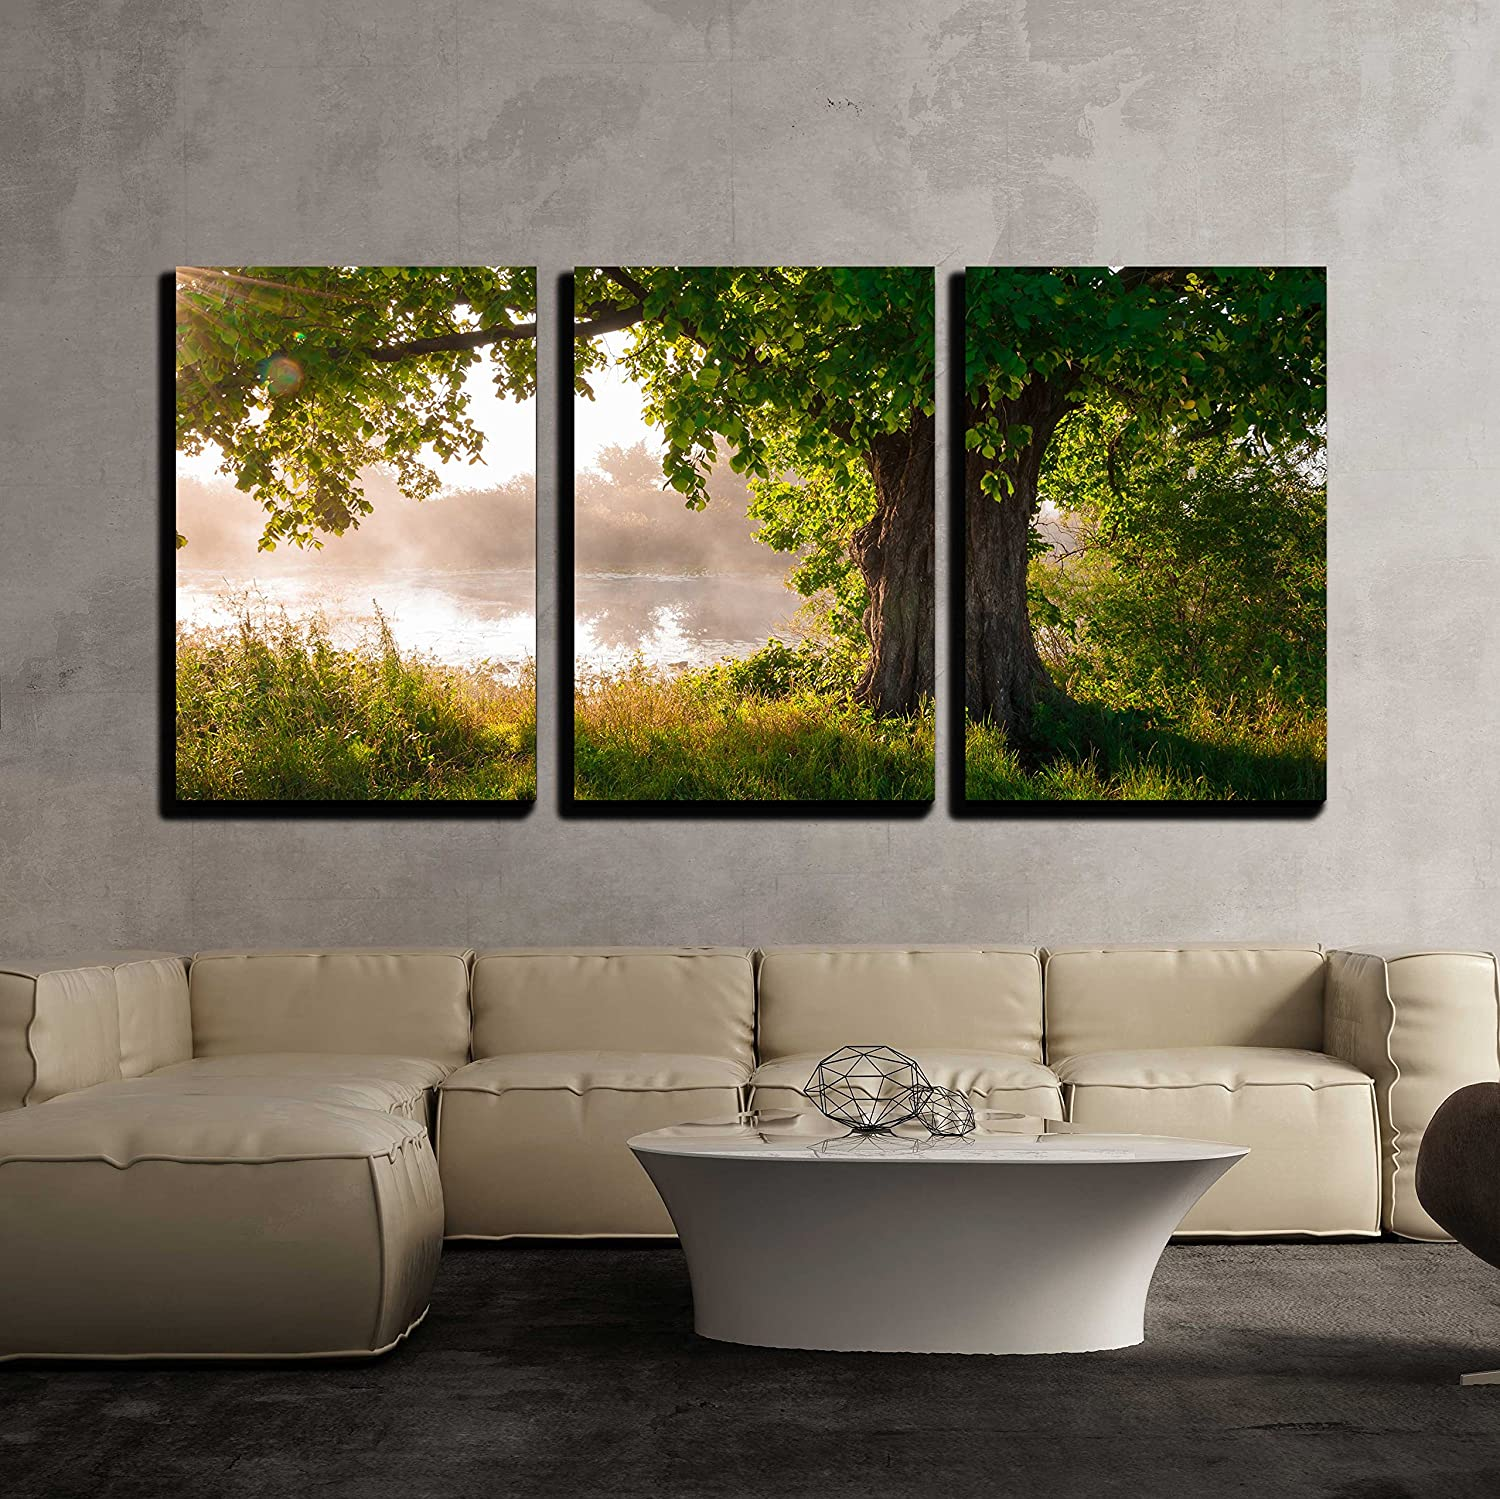 Wall26 - 3 Piece Canvas Wall Art - Oak Tree in Full Leaf in Summer Standing Alone - Modern Home Decor Stretched and Framed Ready to Hang - 24 x36 x3 Panels